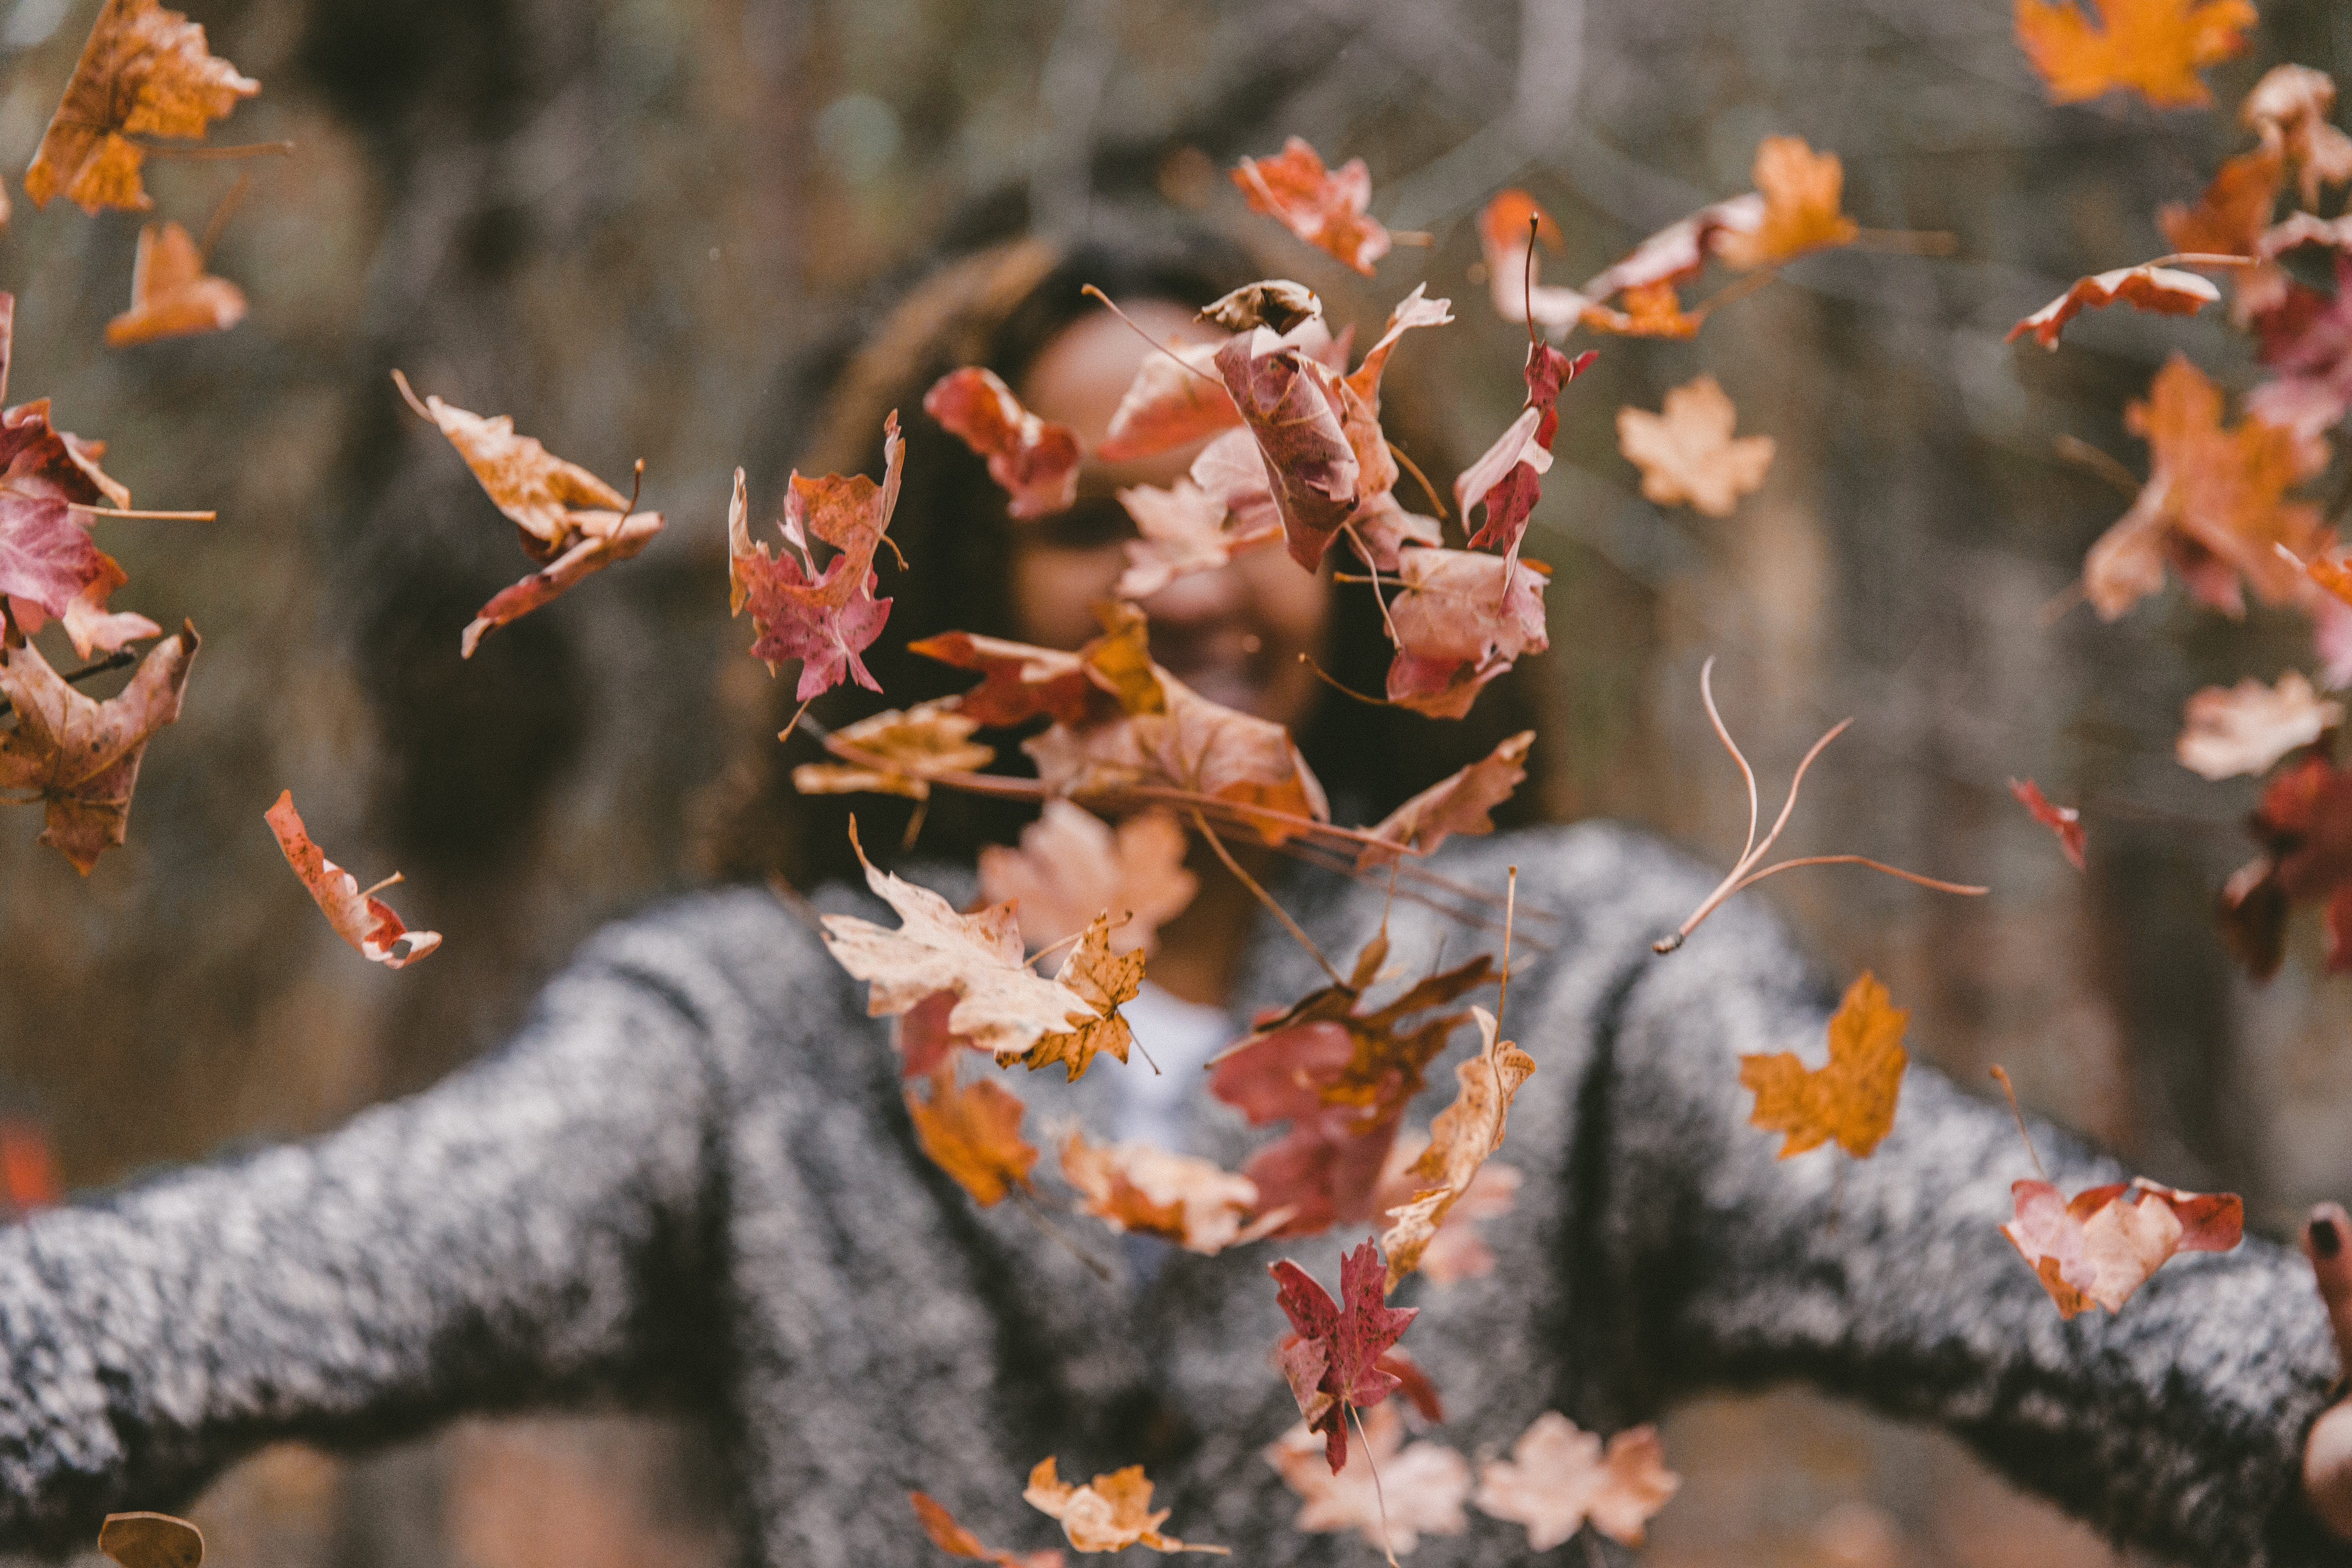 Why Autumn Might Be the Right Time to Find a Therapist